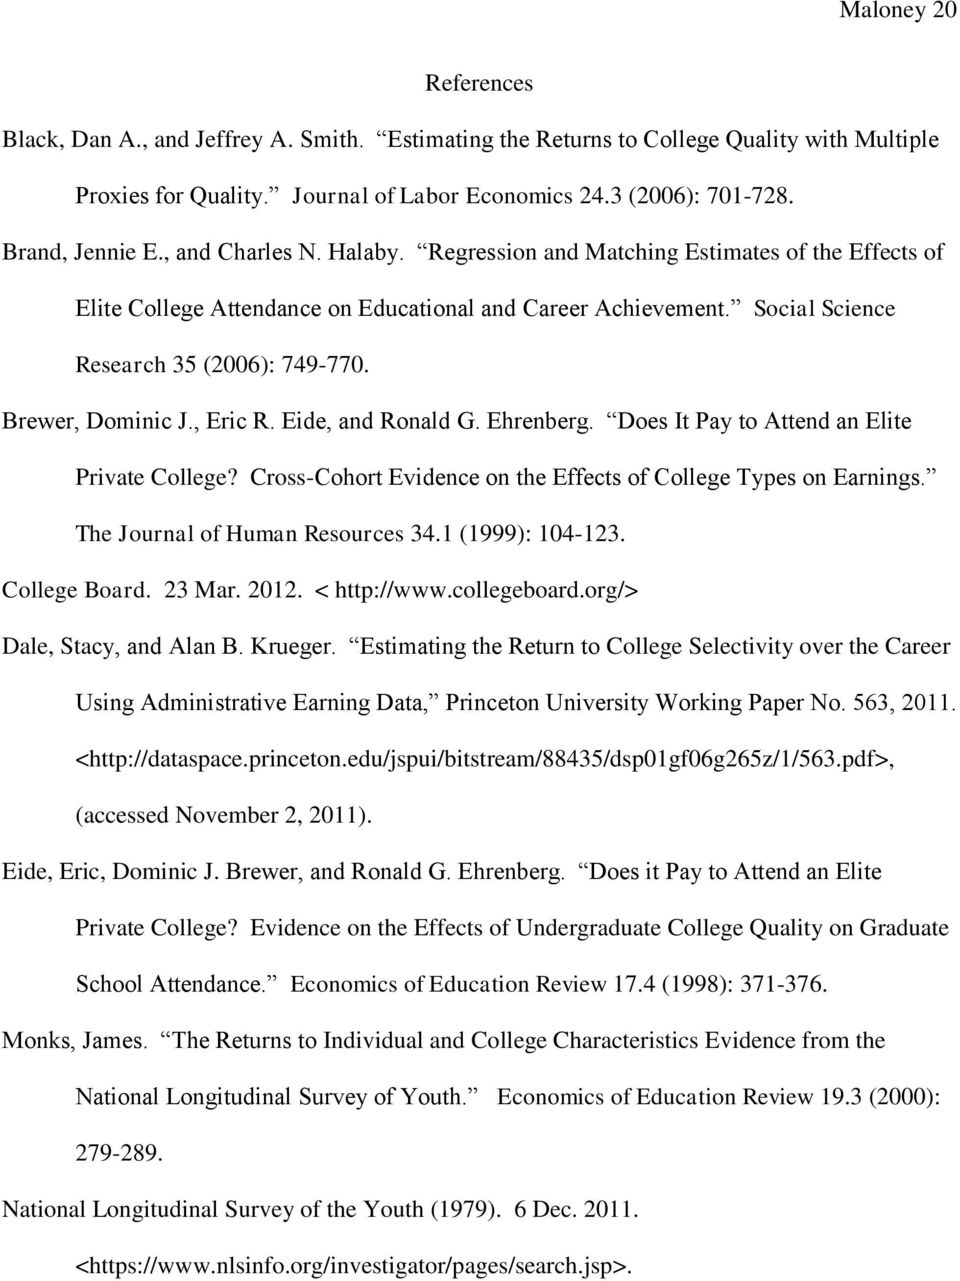 Brewer, Dominic J., Eric R. Eide, and Ronald G. Ehrenberg. Does It Pay to Attend an Elite Private College? Cross-Cohort Evidence on the Effects of College Types on Earnings.